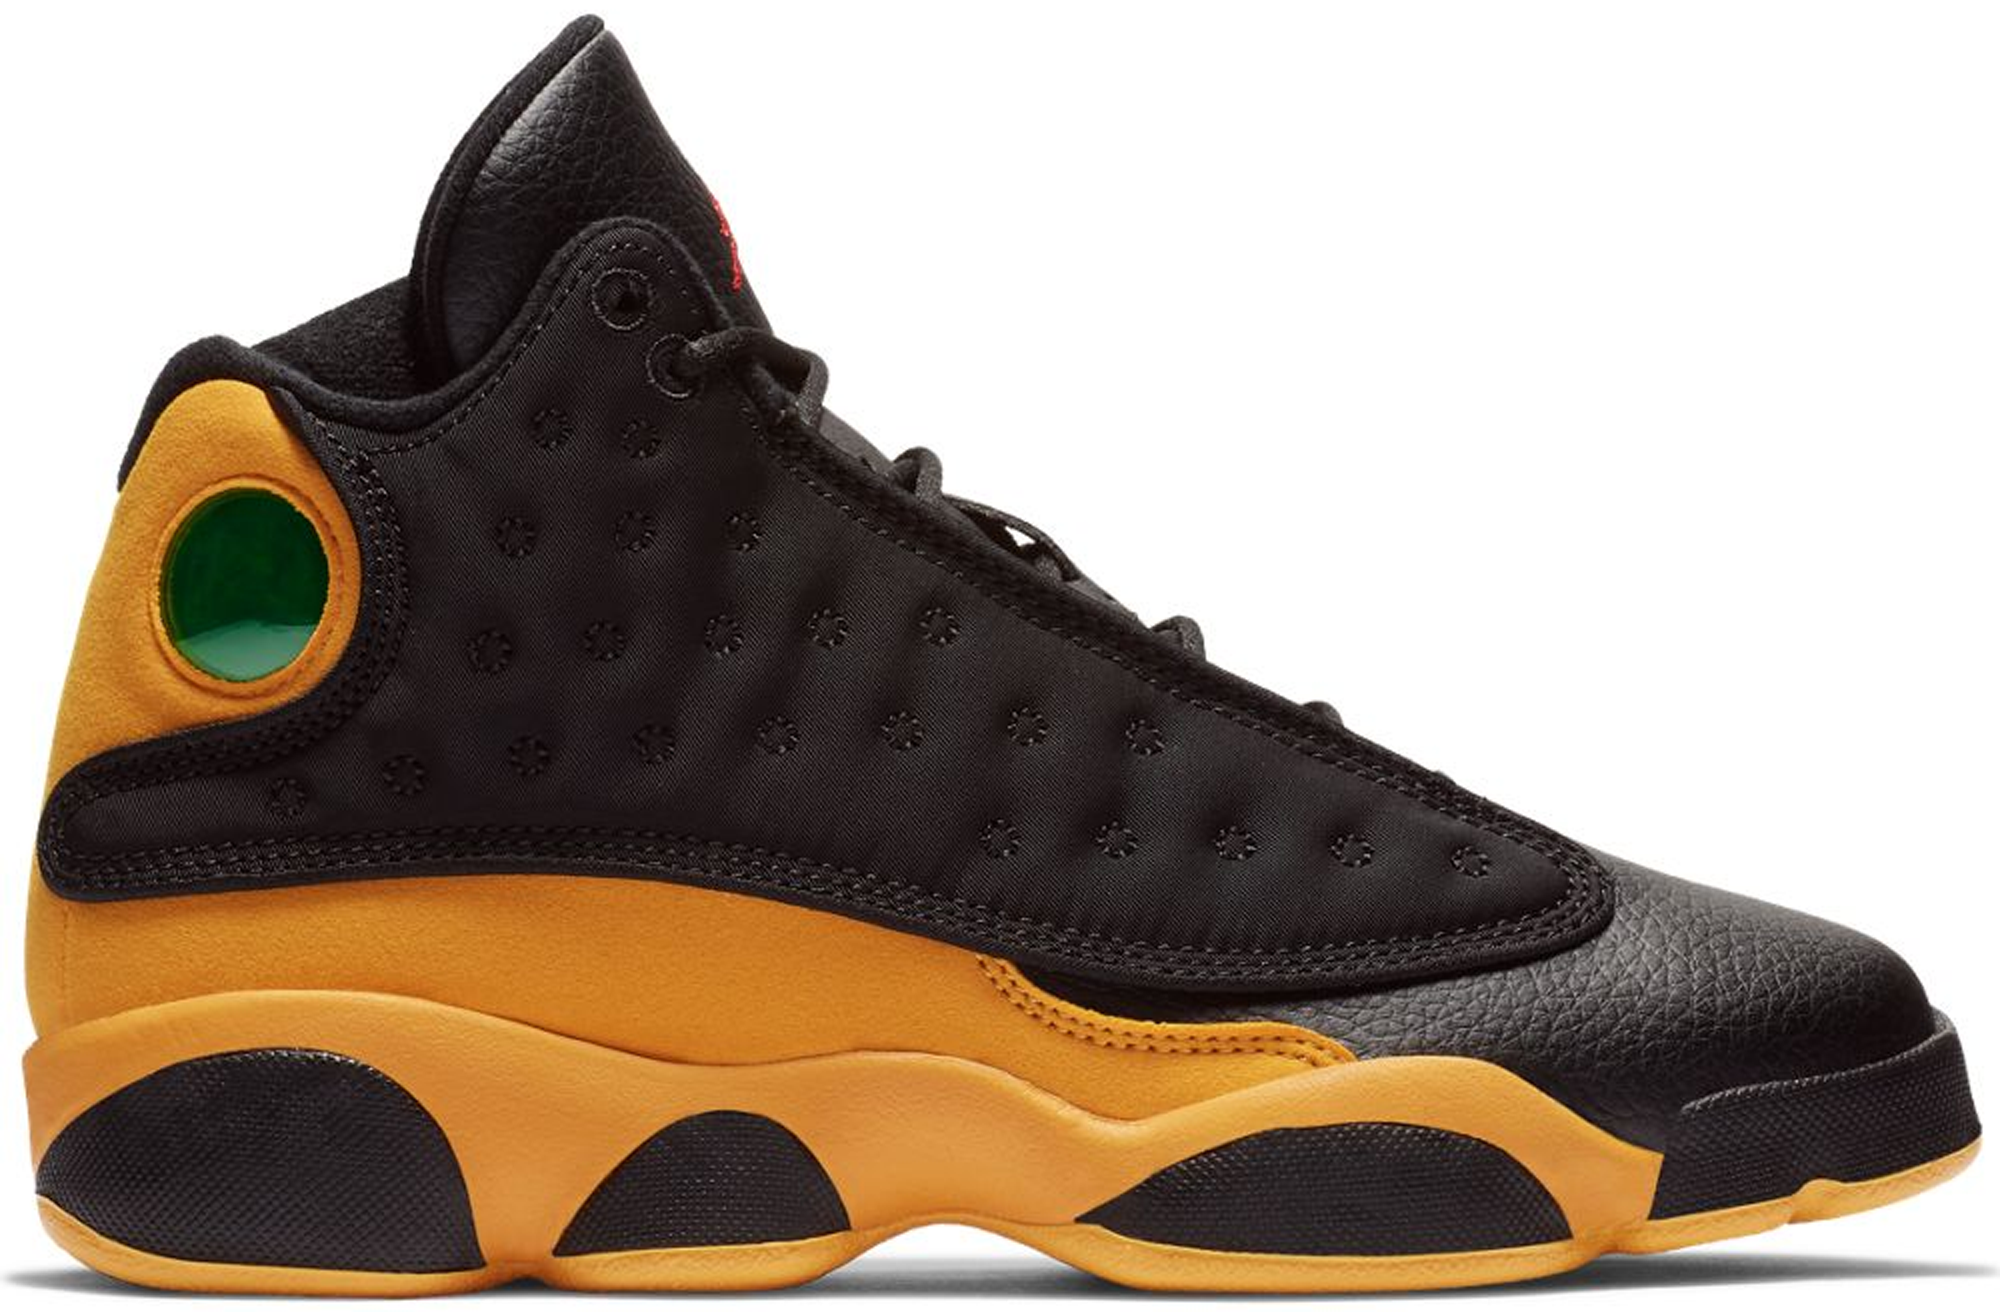 official photos 0528f 571a2 ... best price buy air jordan 13 shoes deadstock sneakers 526b2 9a207